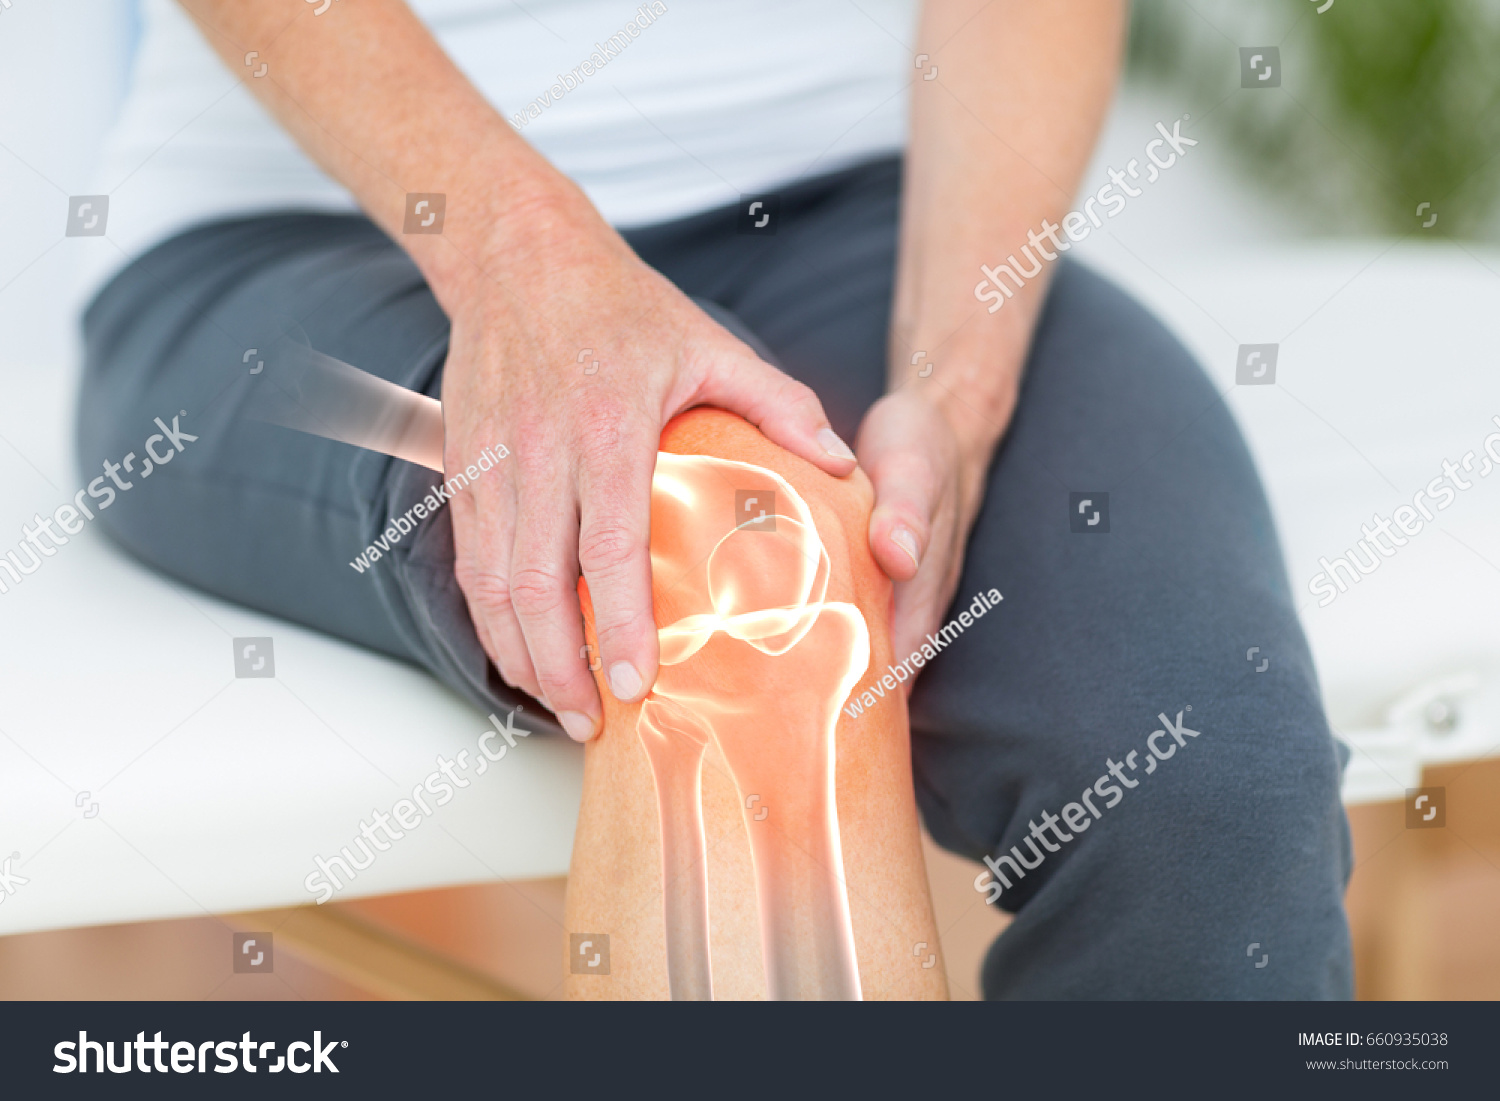 Digitally composite image of man suffering with knee cramp  #660935038